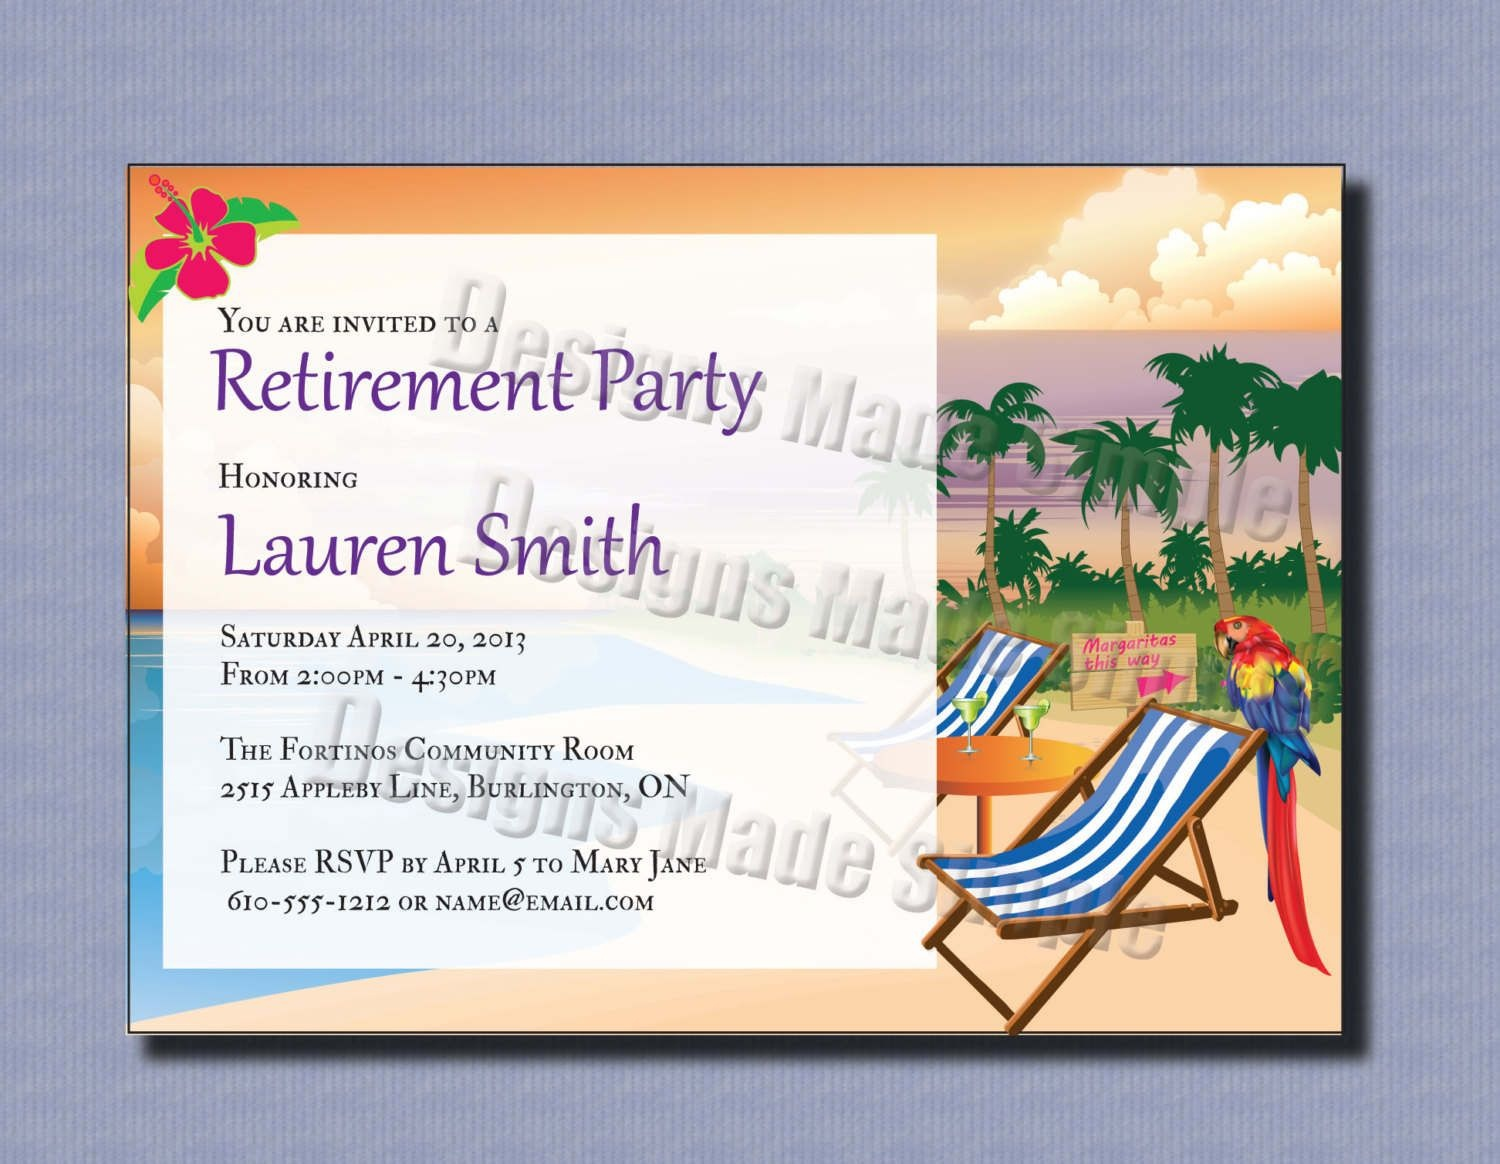 Retirement Party Invitations Template 2Xizvtxm | Retirement Or Cooks - Free Printable Retirement Party Invitations